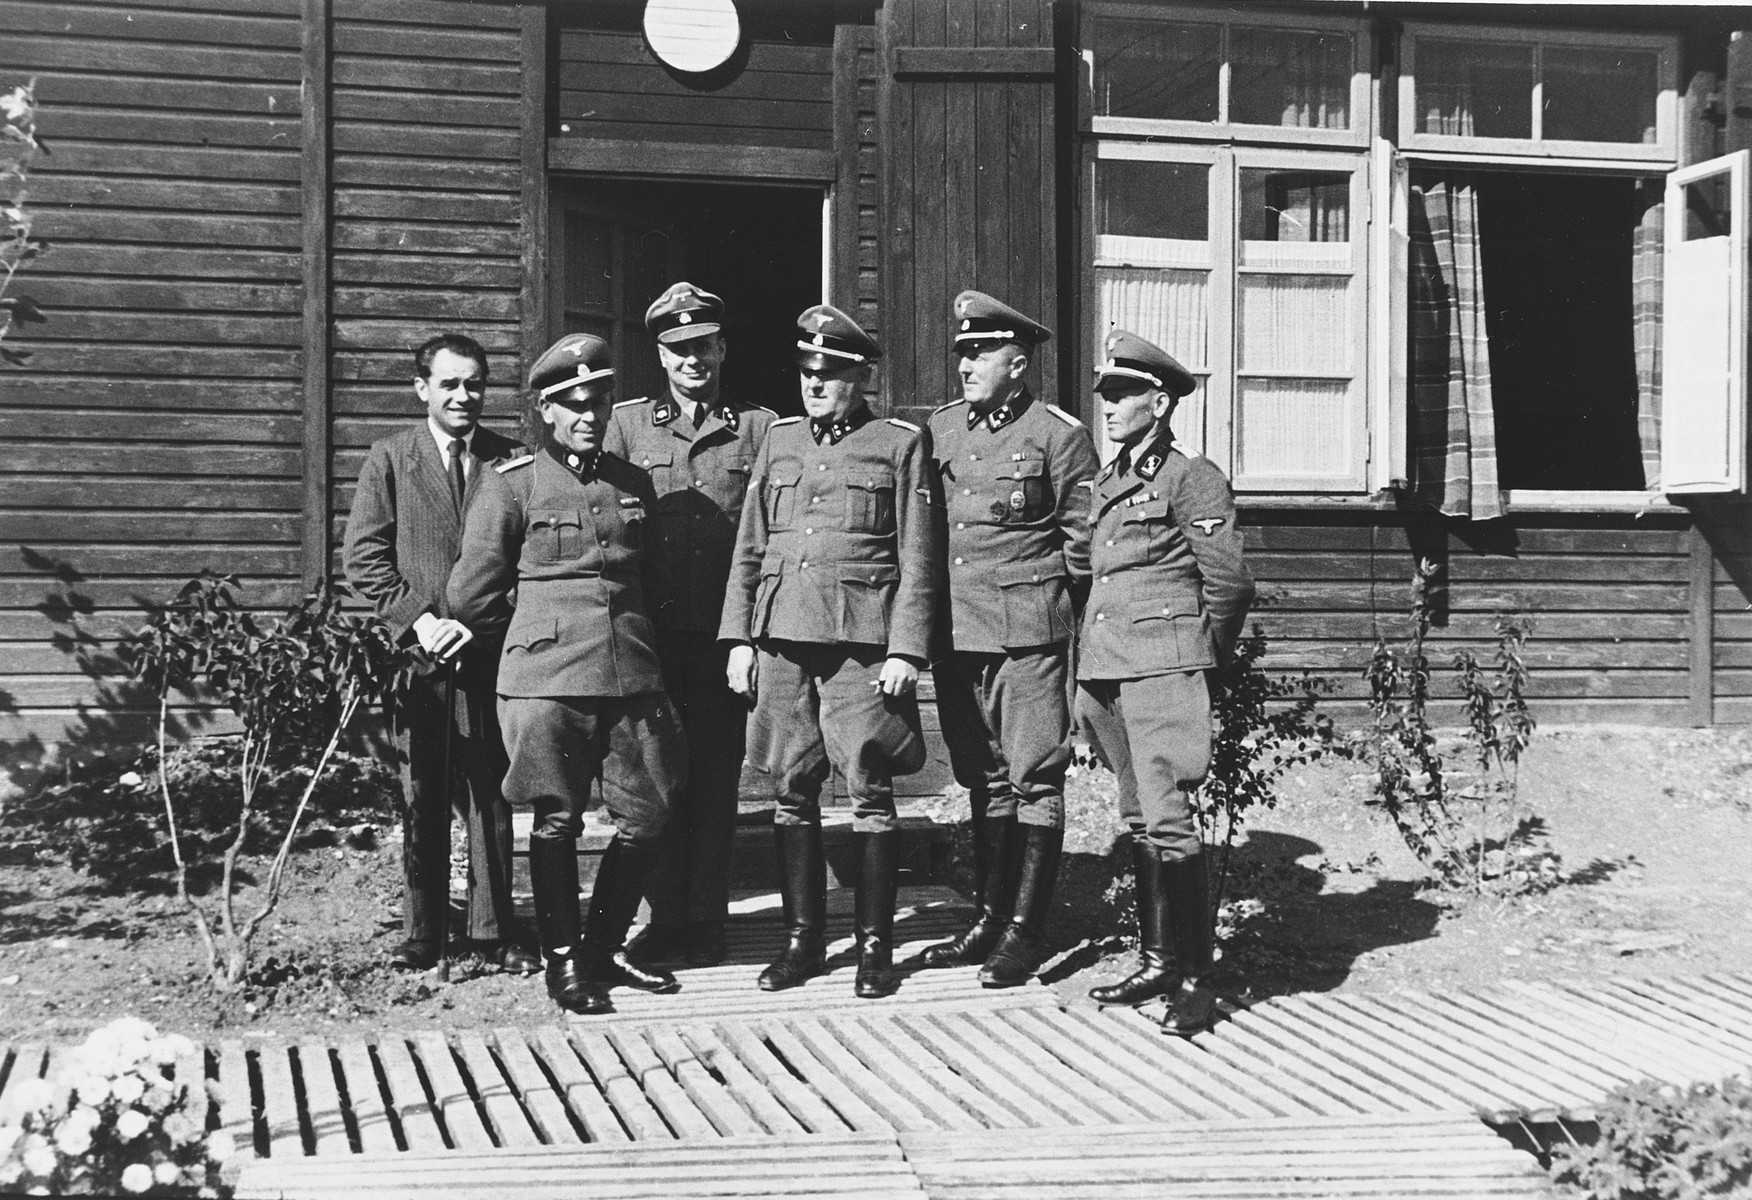 Group portrait of SS officers in front of a barrack in the Hinzert concentration camp.  Pictured on the far right is Anton Ganz.